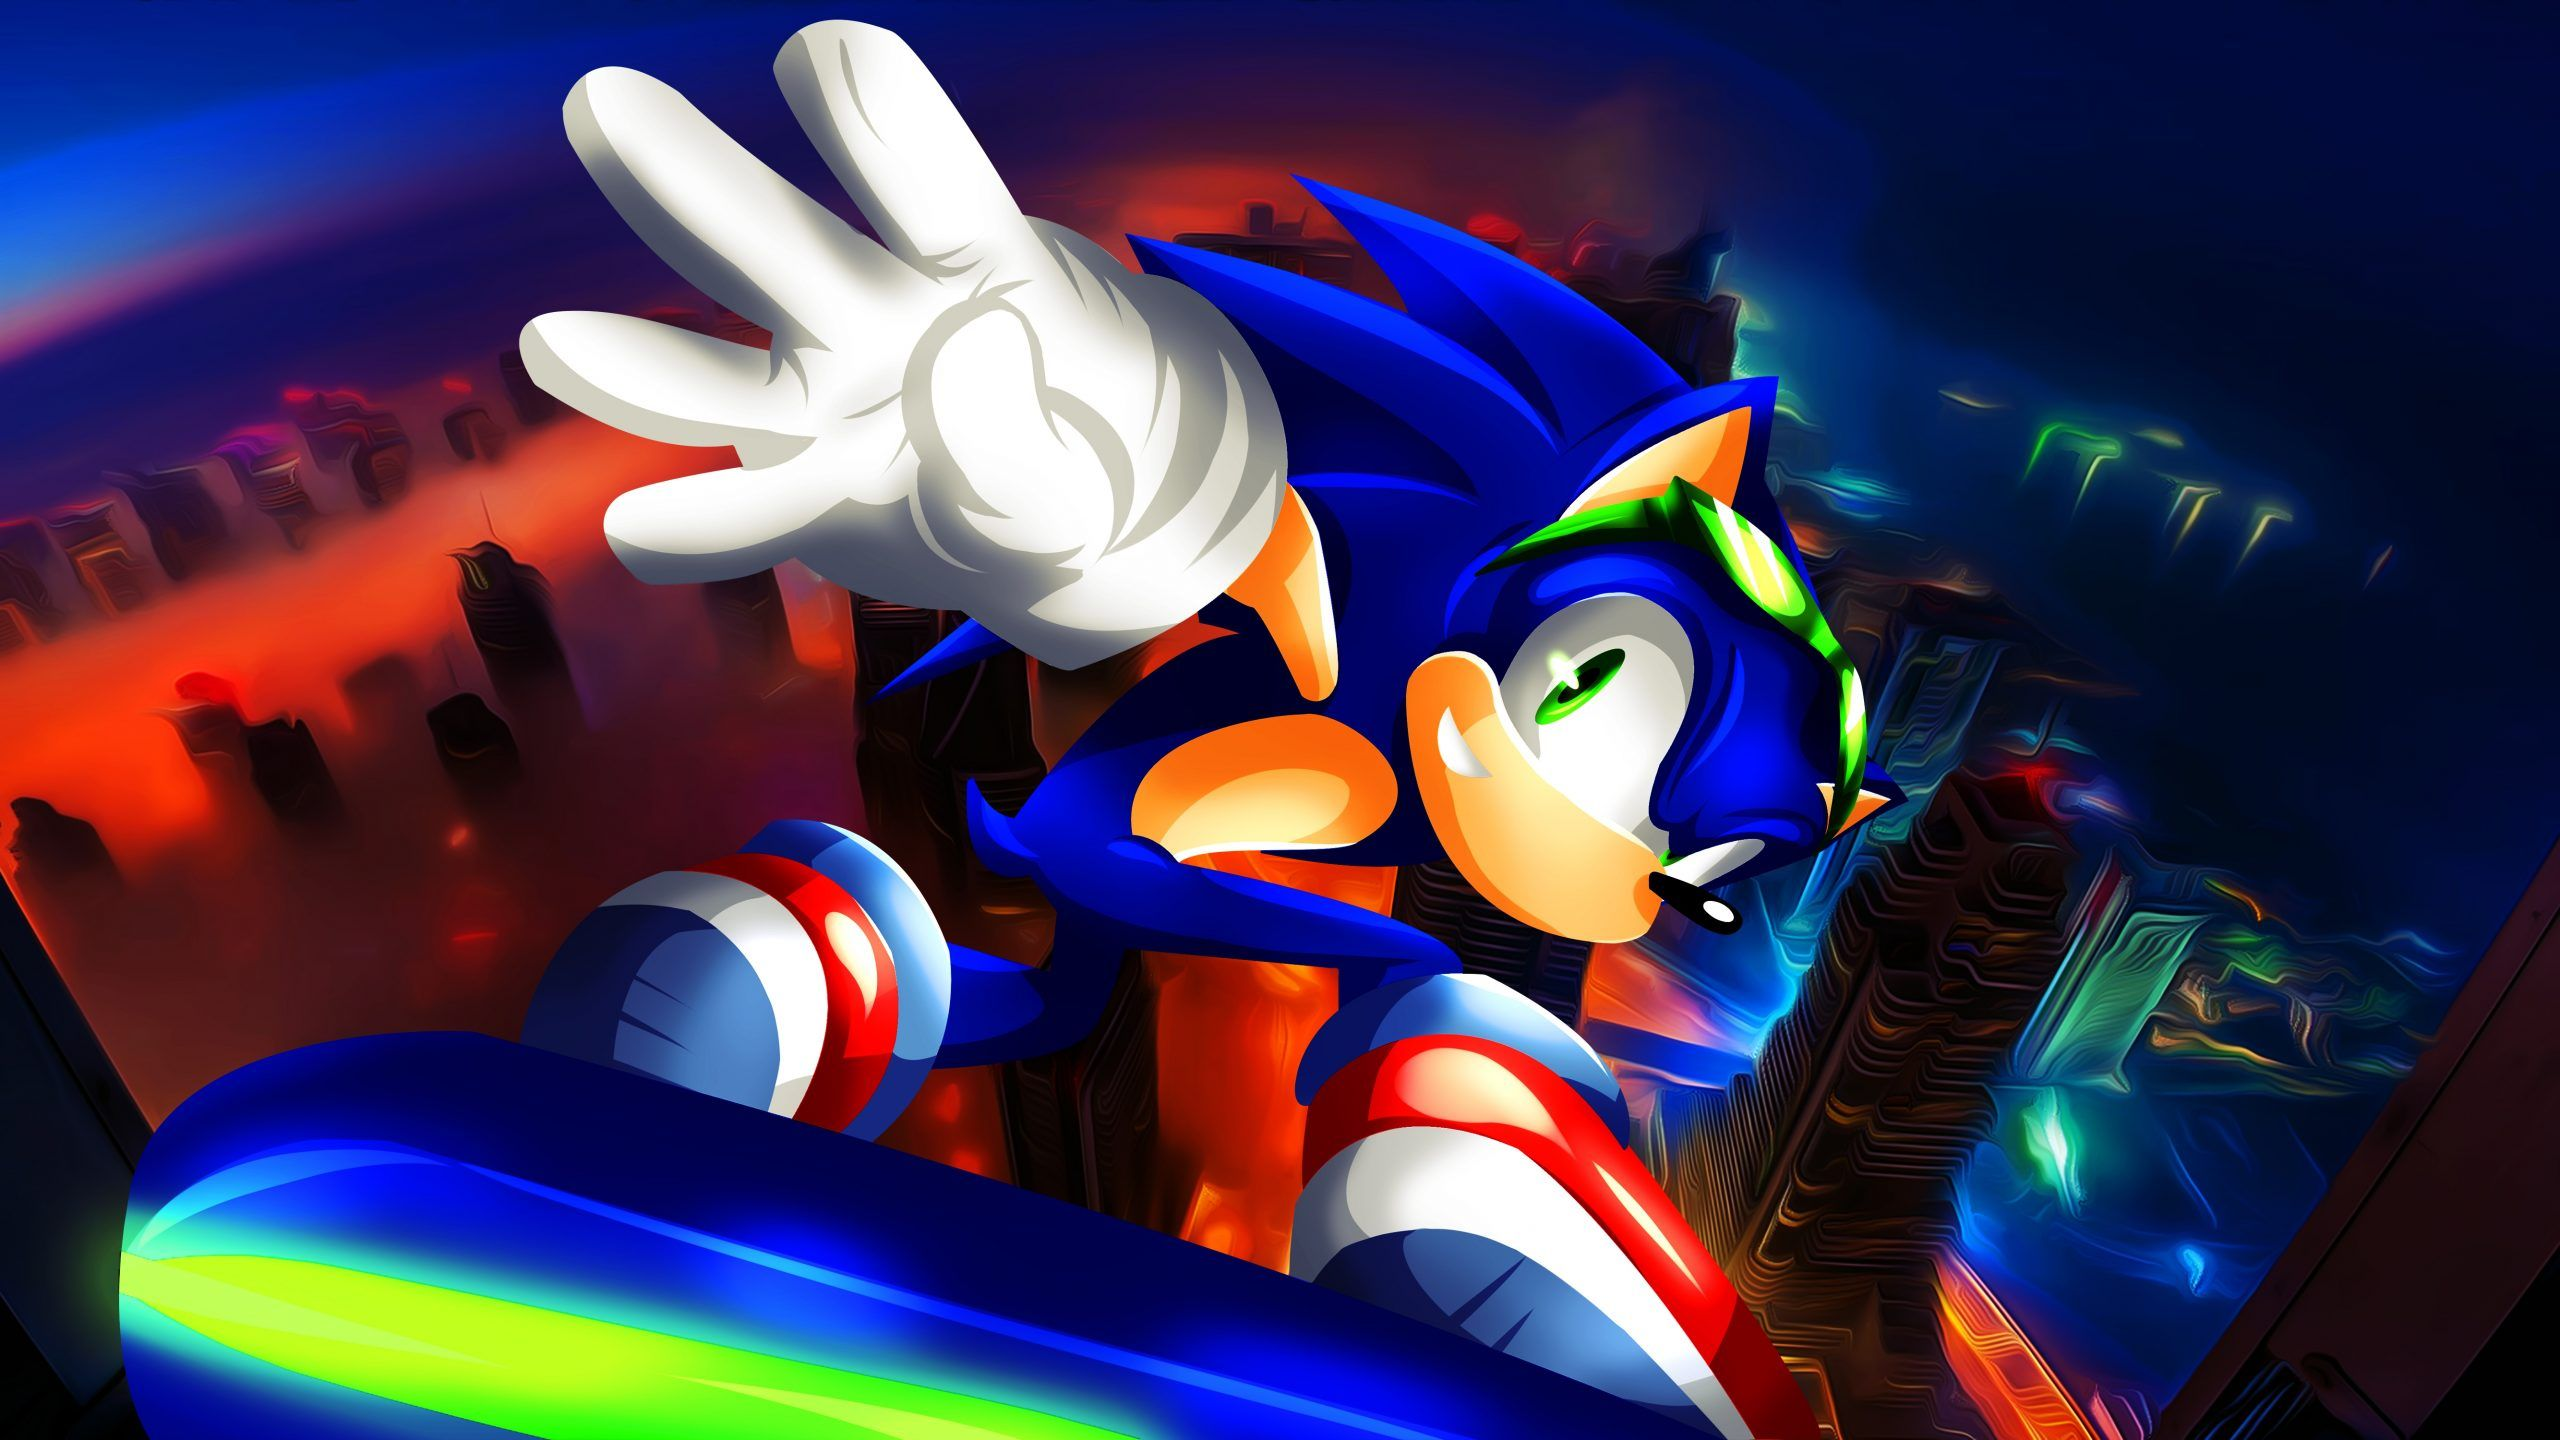 Sonic Riders Un Gravitify 5k Hd Games 4k Wallpapers Regarding